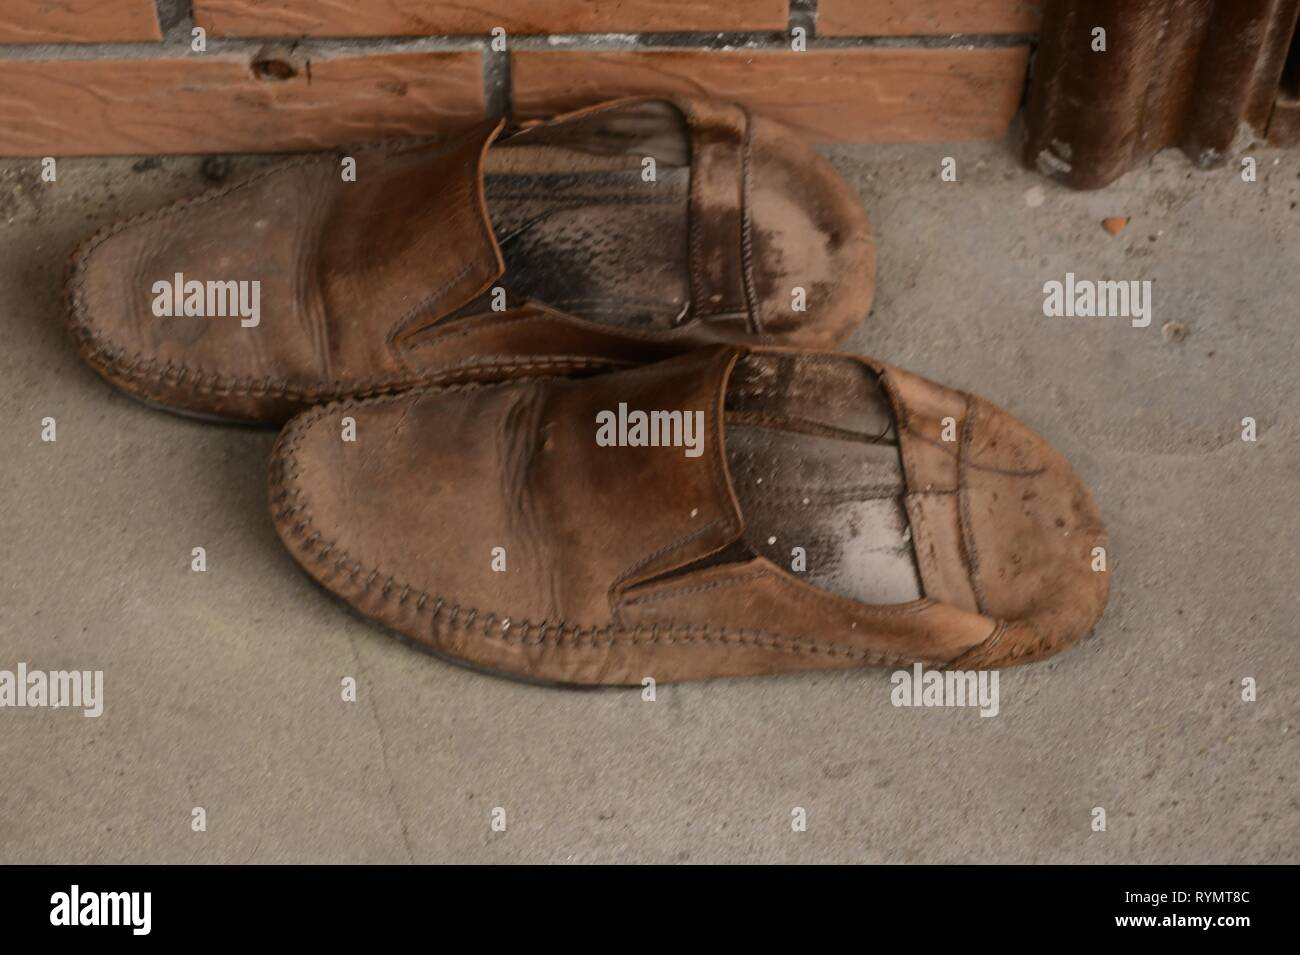 old brown leather shoes waiting to be polished - Stock Image